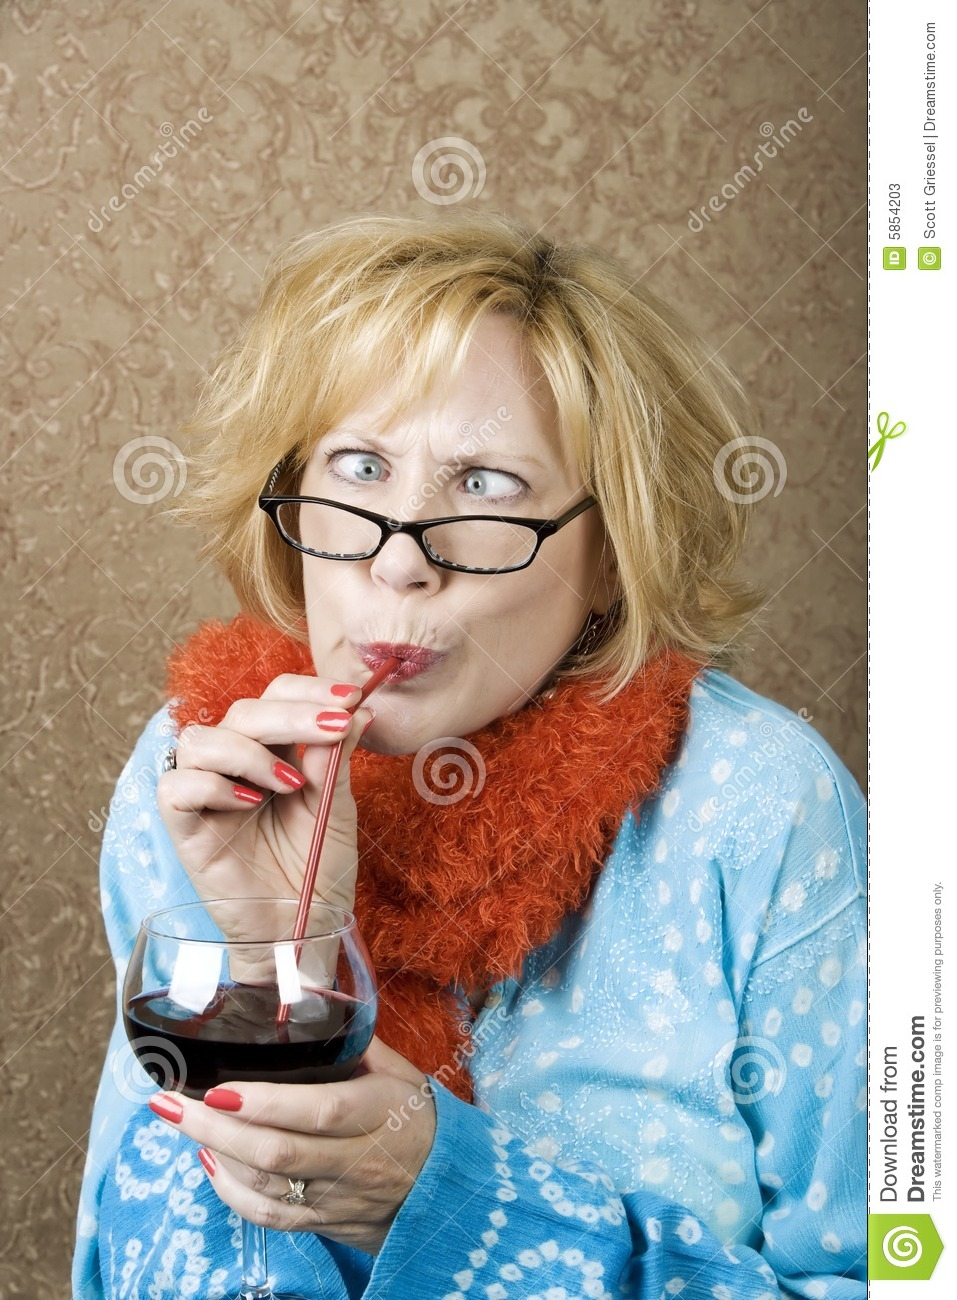 Crazy woman with crossed eyes drinking wine through a straw.